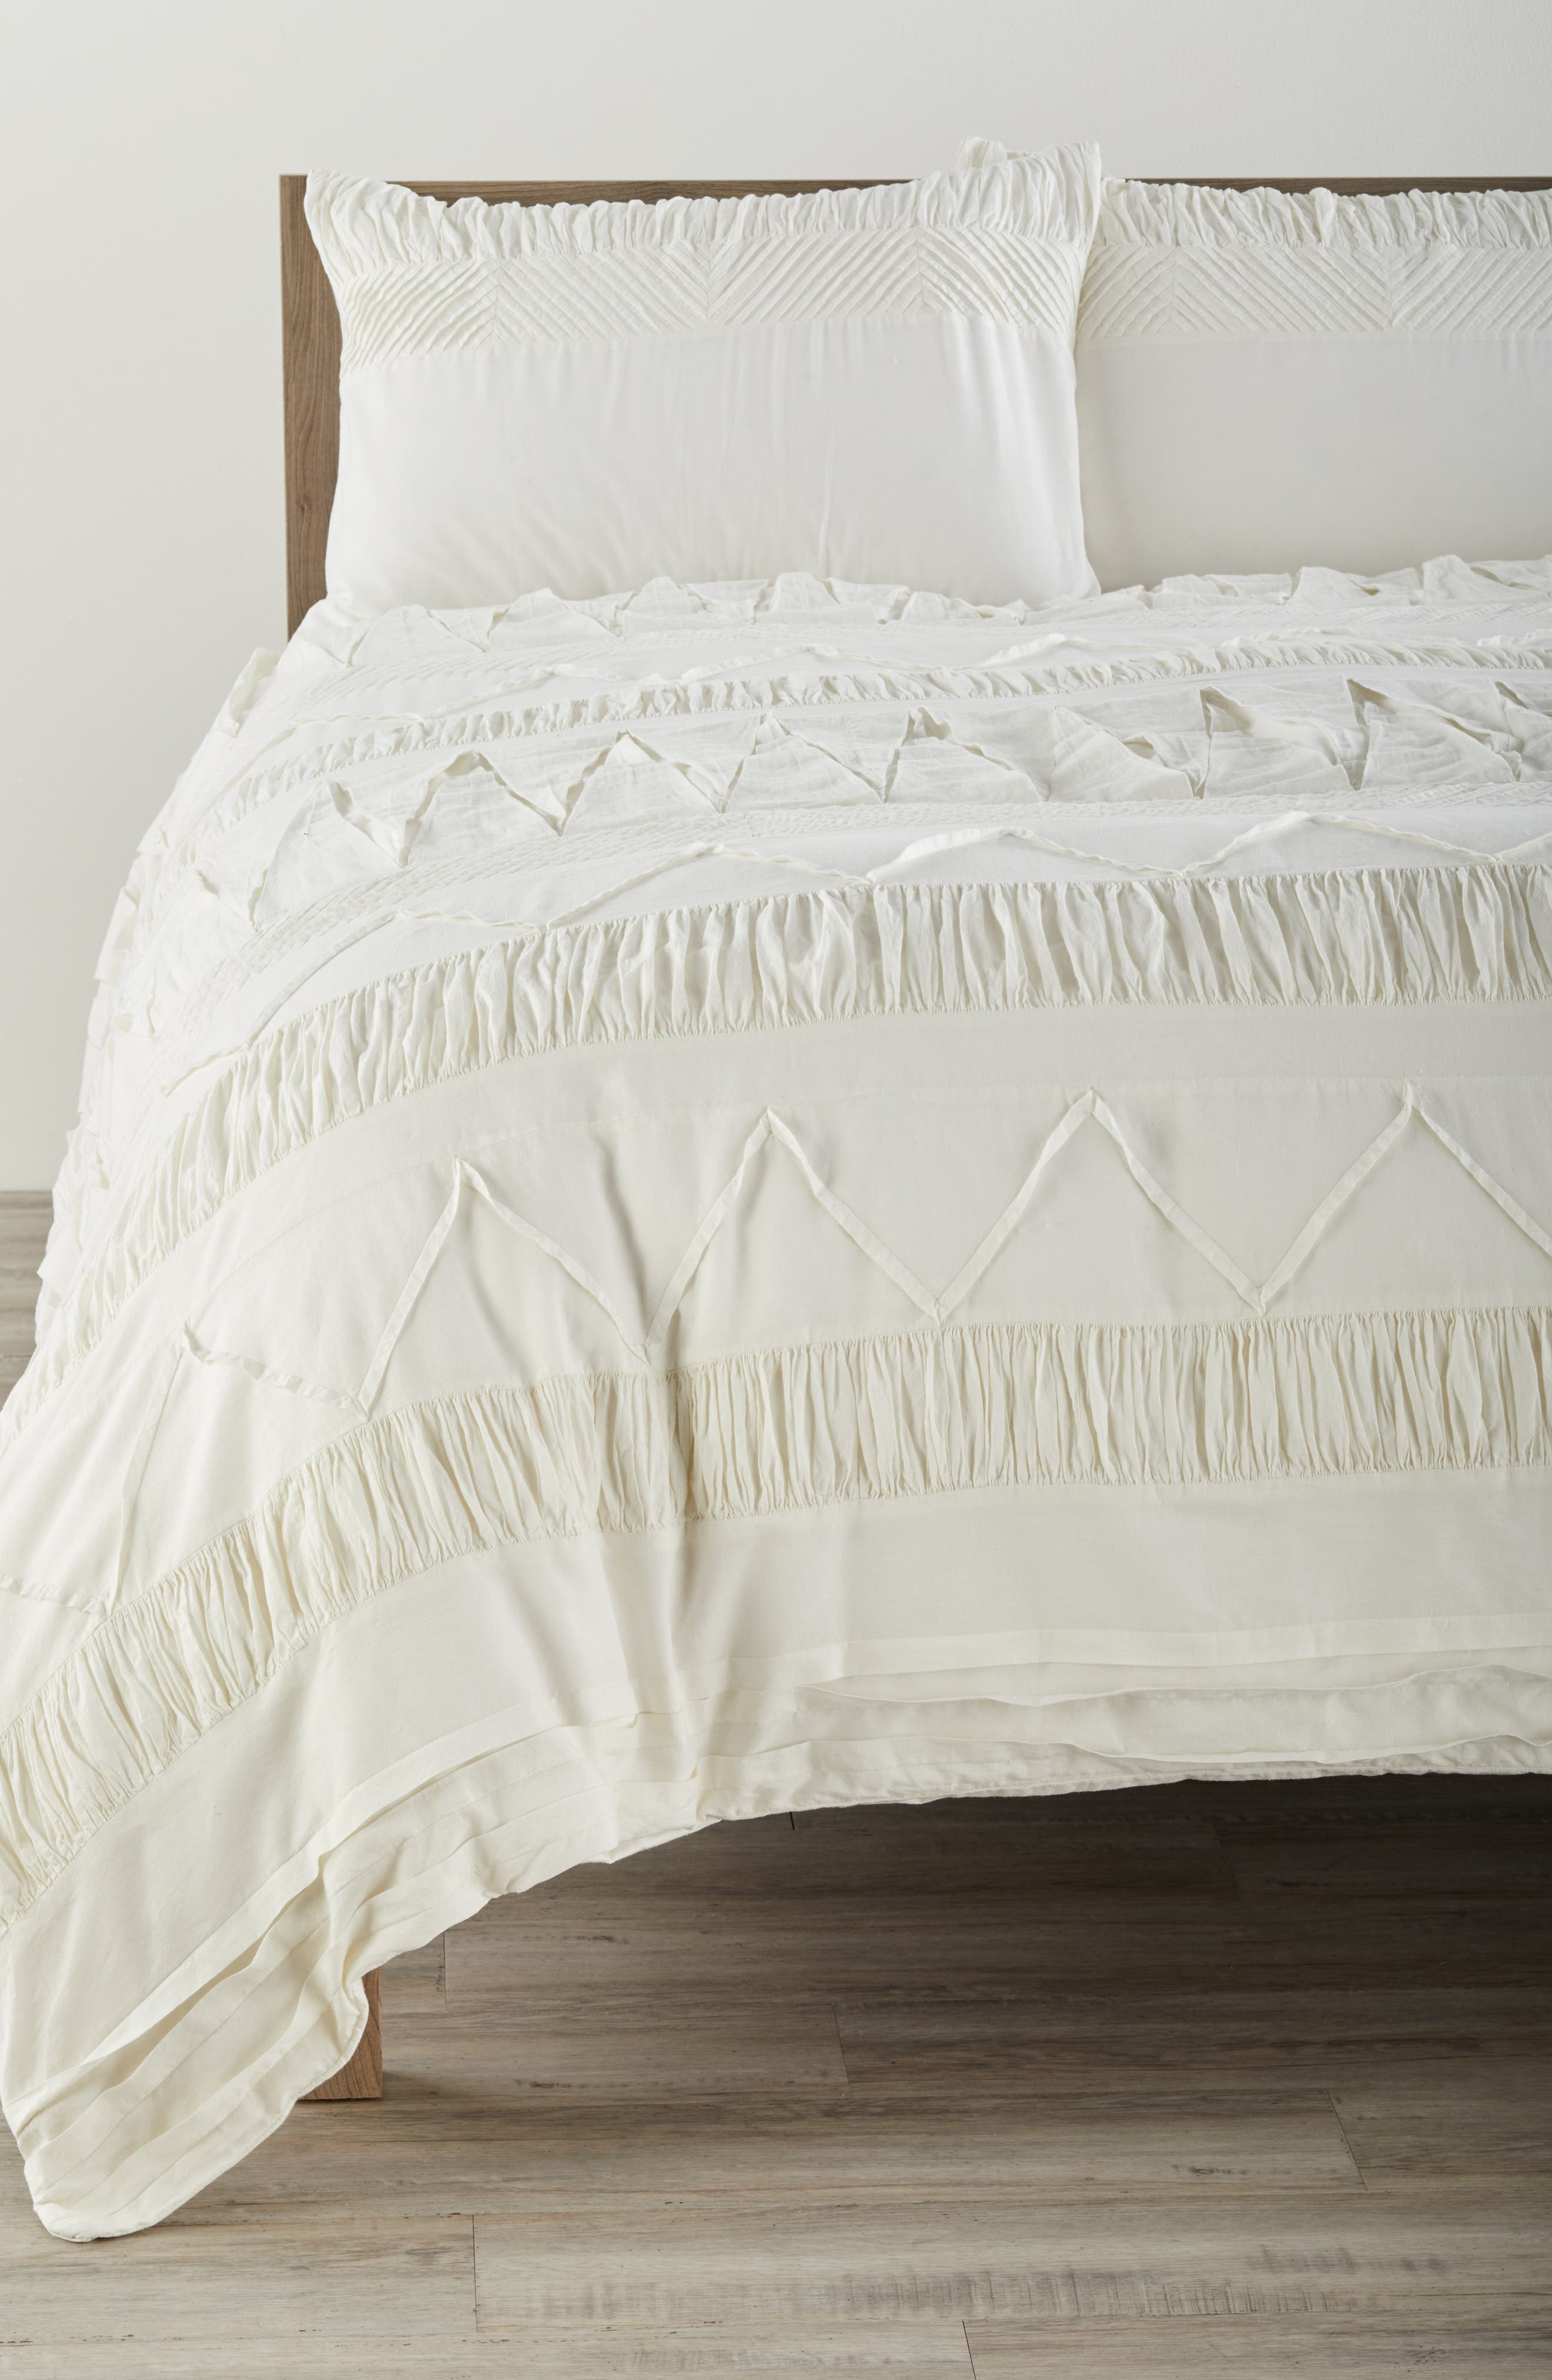 Textured Duvet Cover,                         Main,                         color, 900